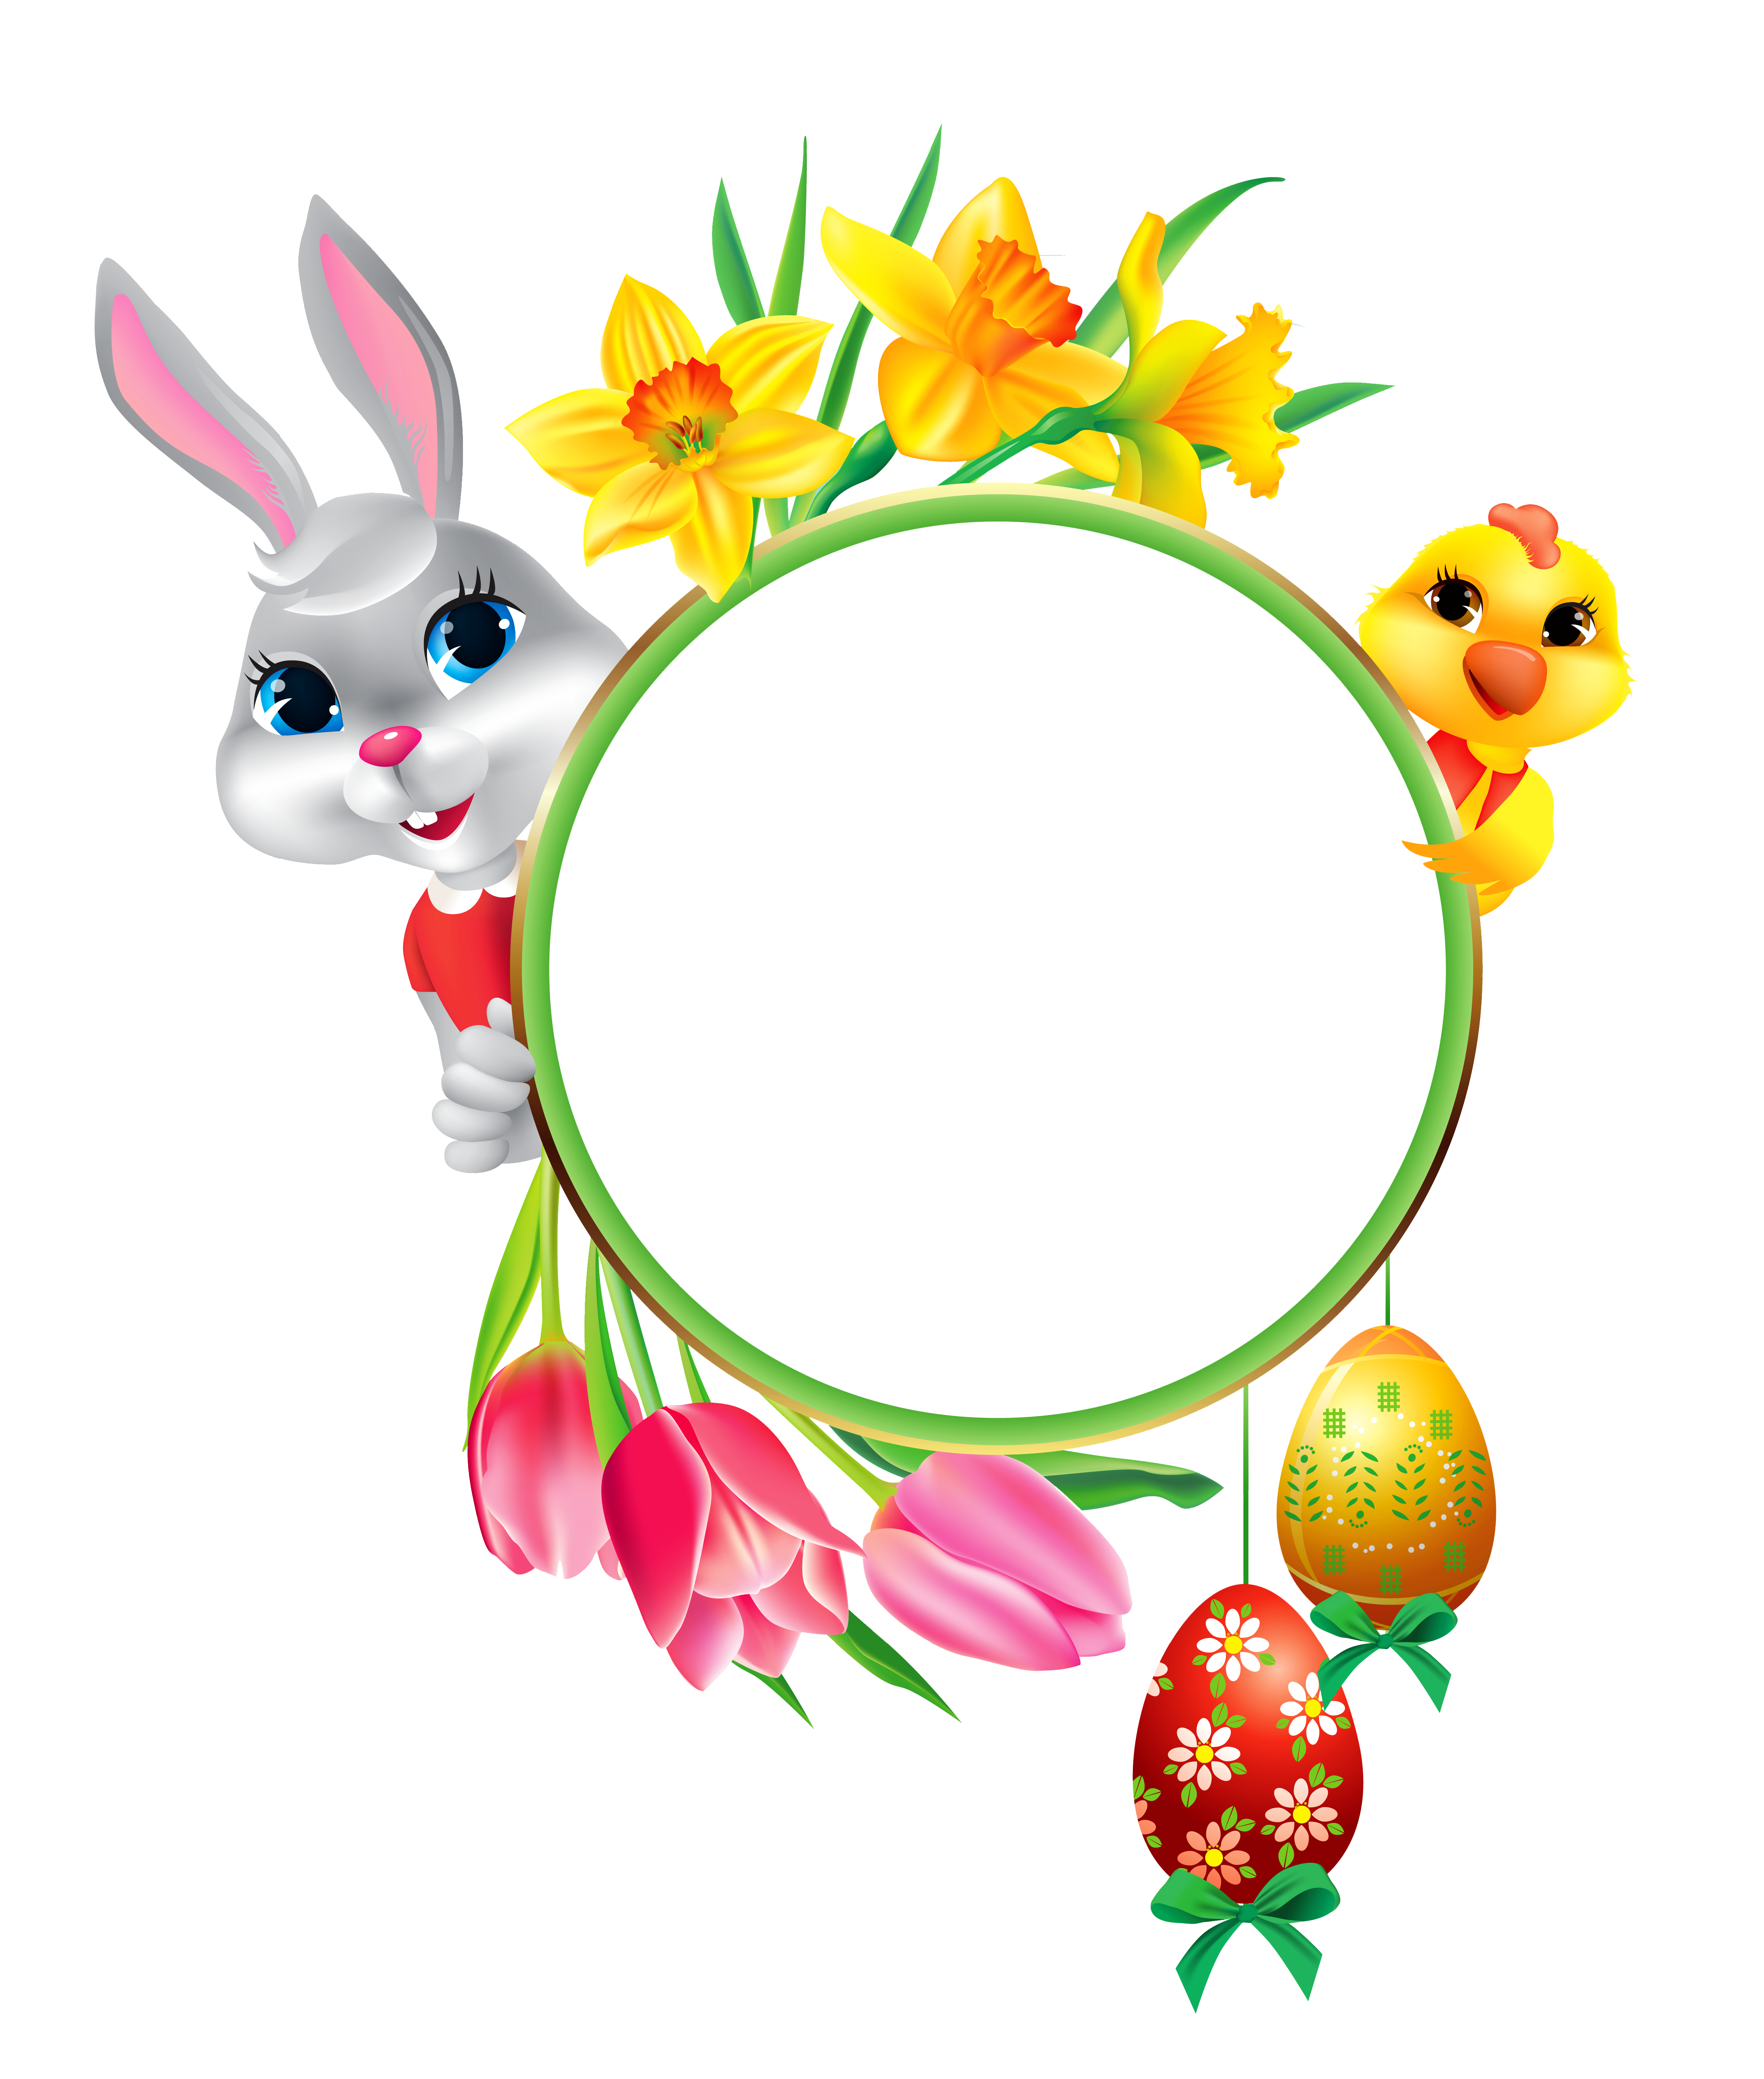 Free Easter Cliparts Frame, Download Free Clip Art, Free.